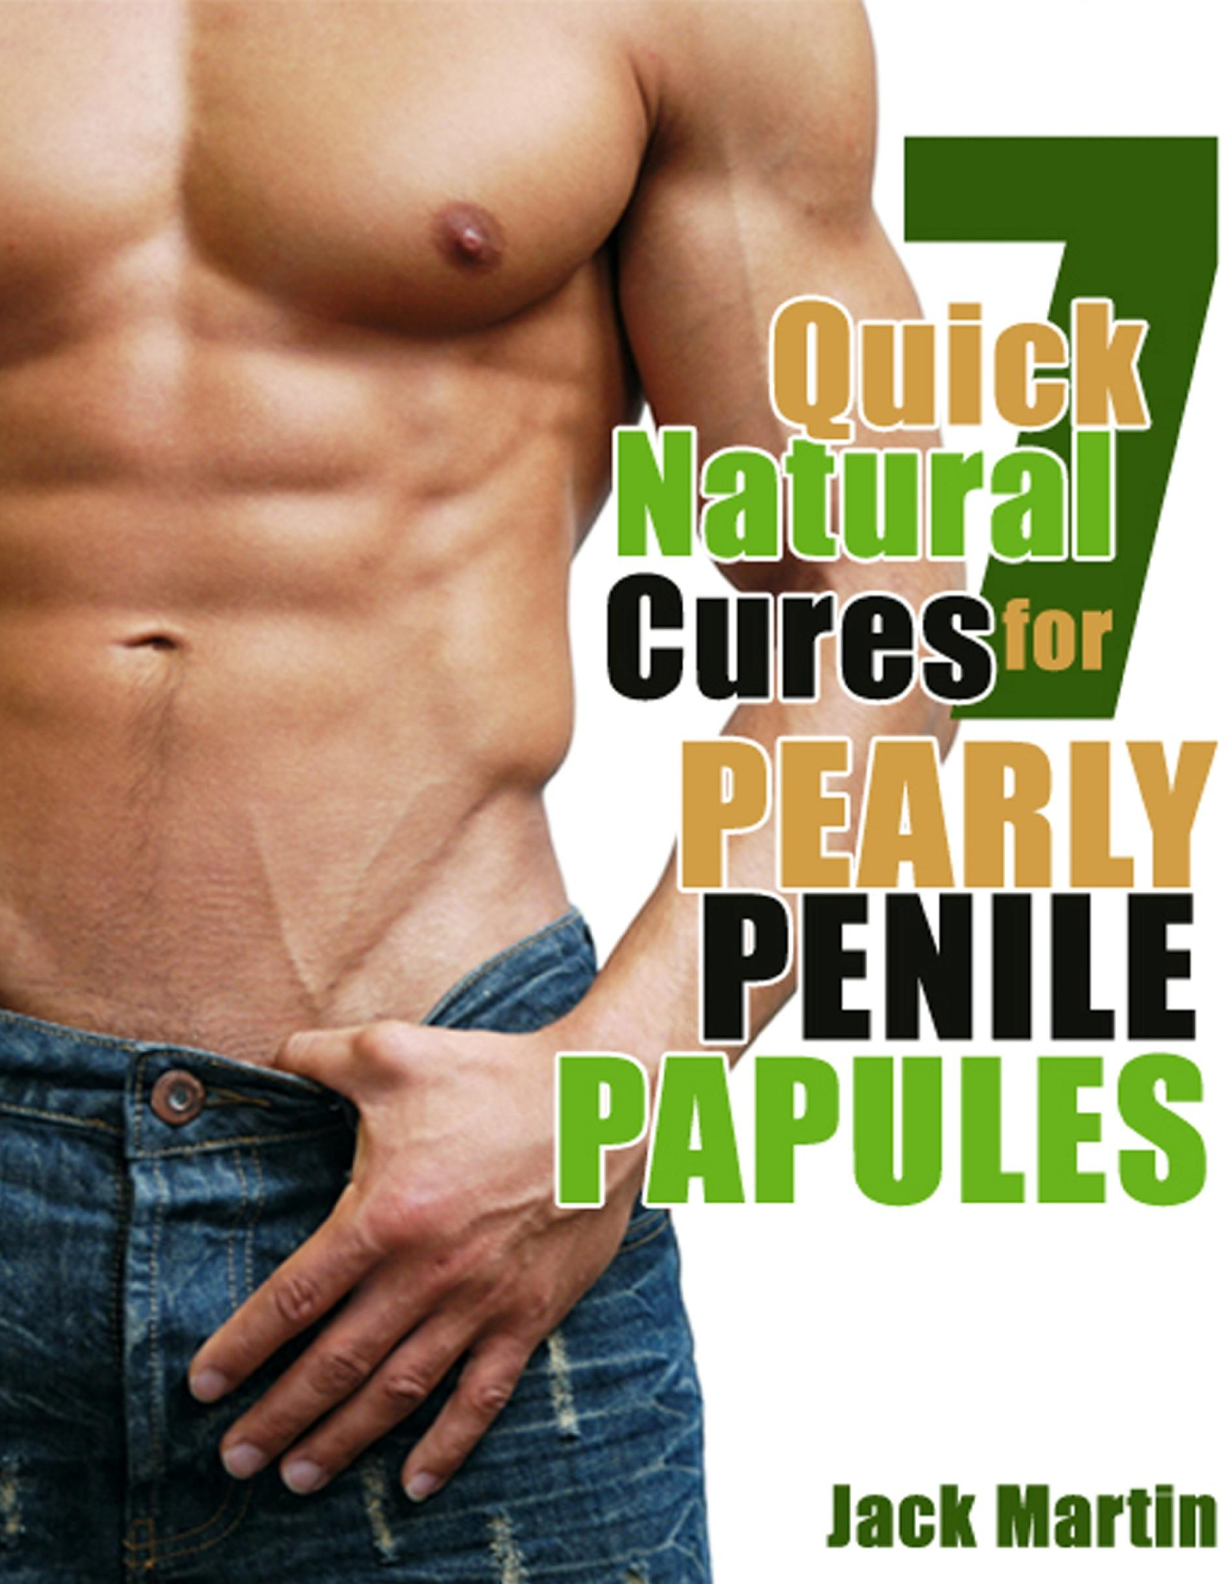 Penile severe papules pearly Can laser